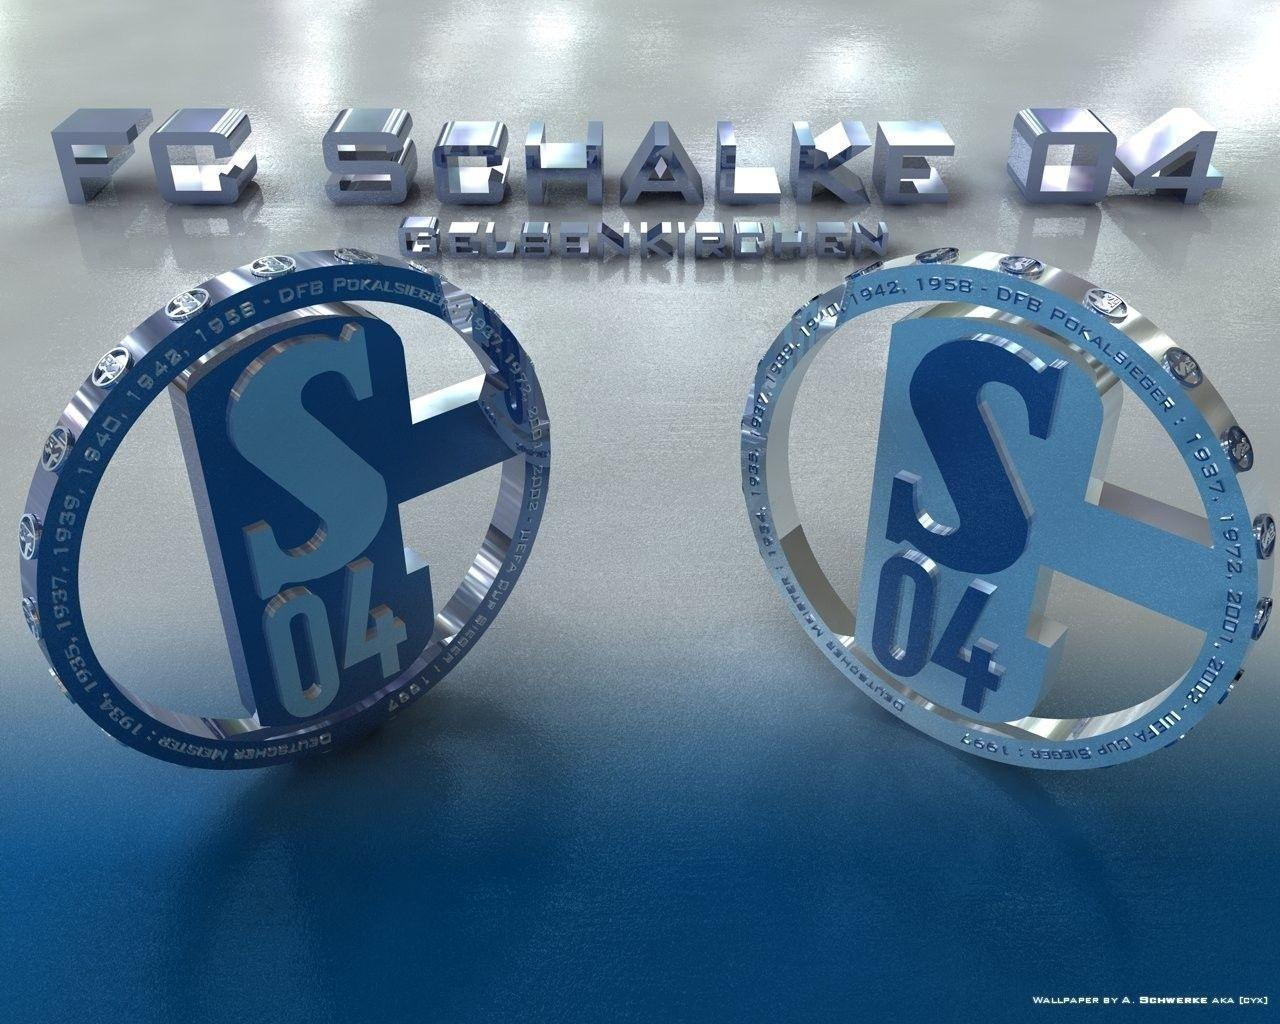 wallpapers free picture: Schalke 04 Wallpapers 2011